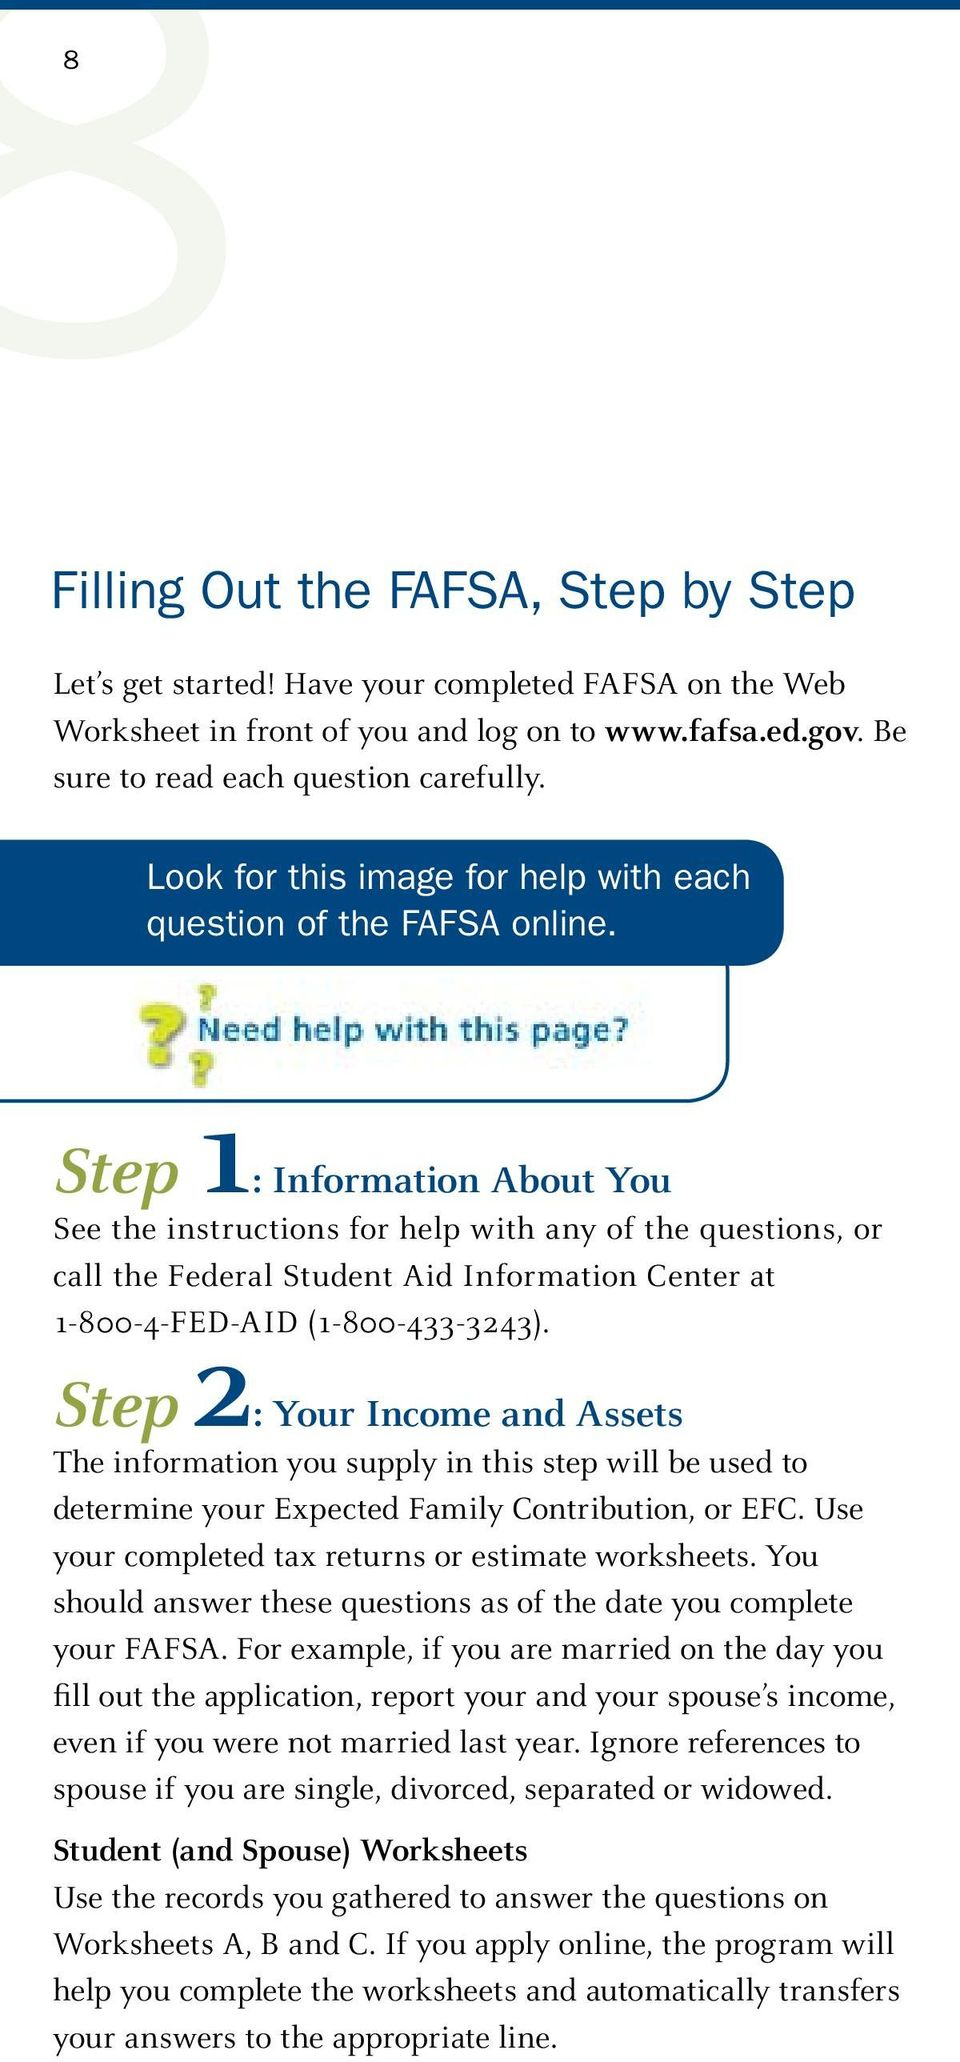 Step 1: Information About You See the instructions for help with any of the questions, or call the Federal Student Aid Information Center at 1-800-4-FED-AID (1-800-433-3243).